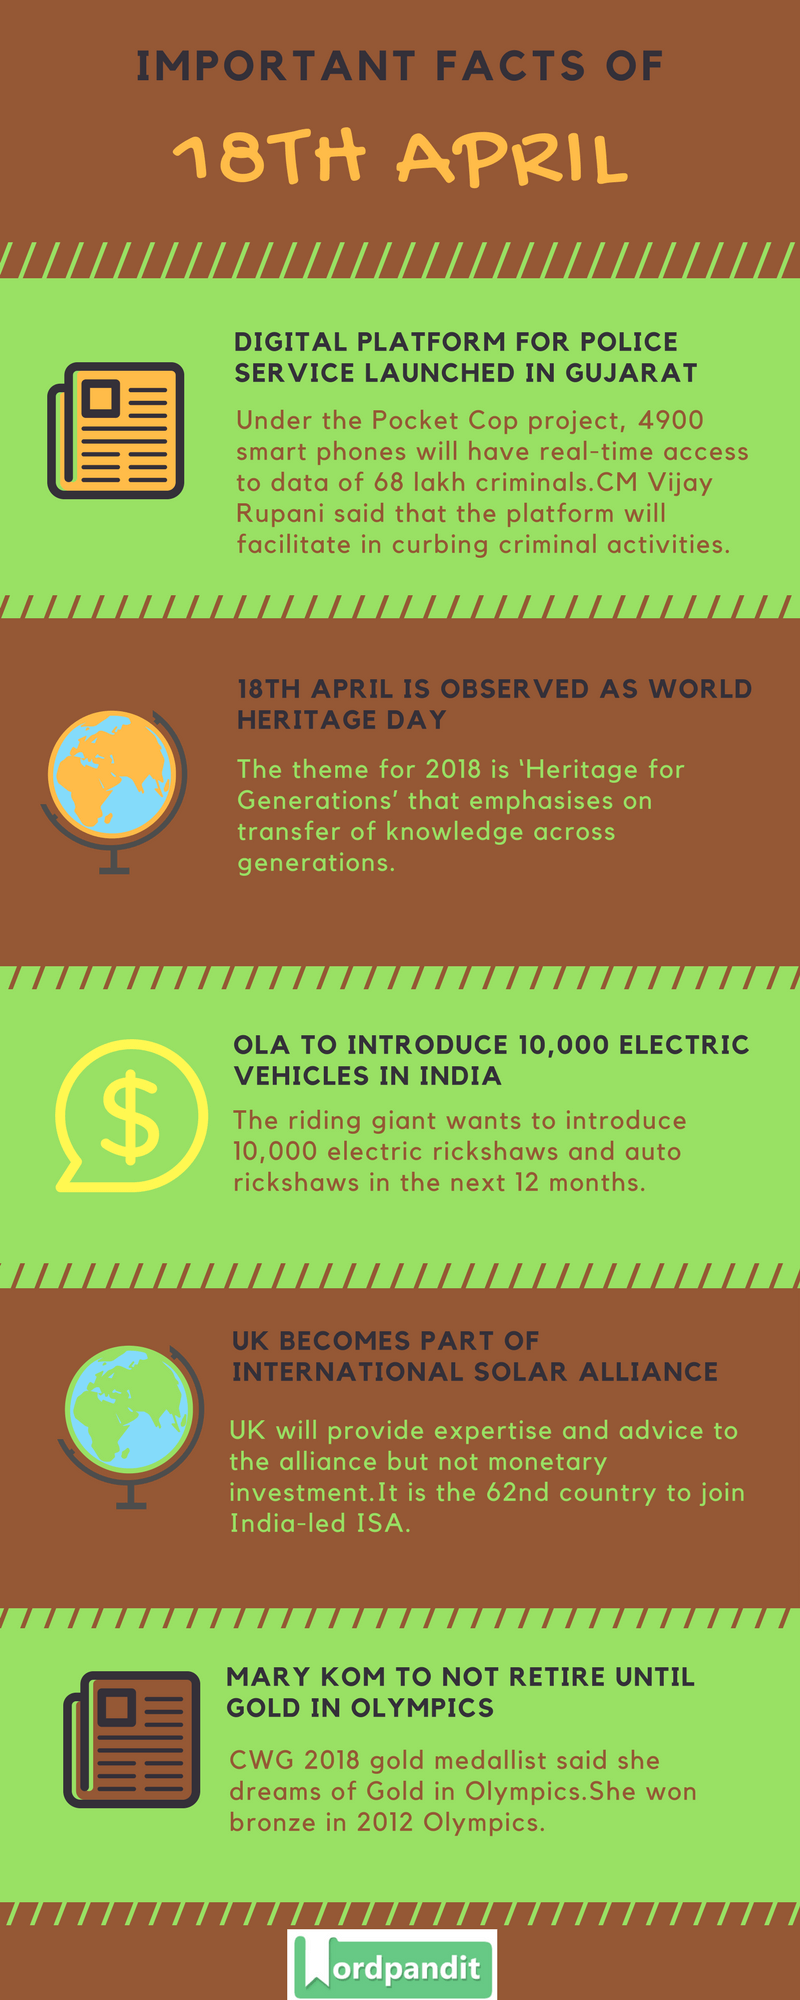 Daily Current Affairs 18 April 2018 Current Affairs Quiz April 18 2018 Current Affairs Infographic